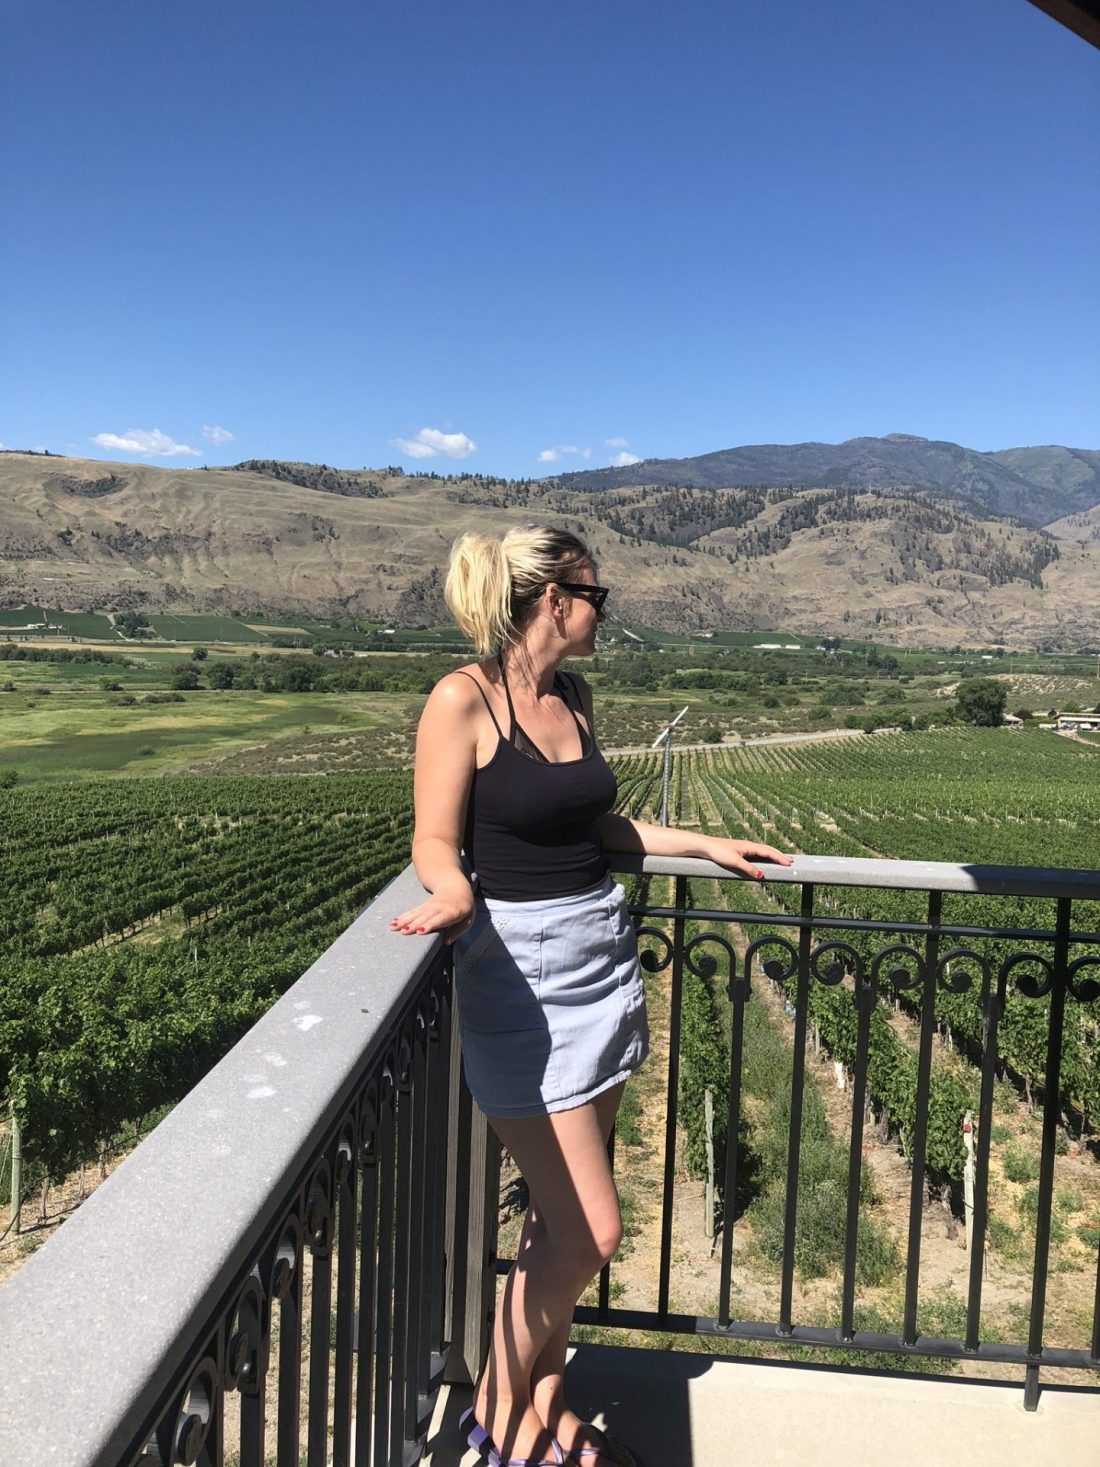 At Burrowing Owl Winery in the Okanagan